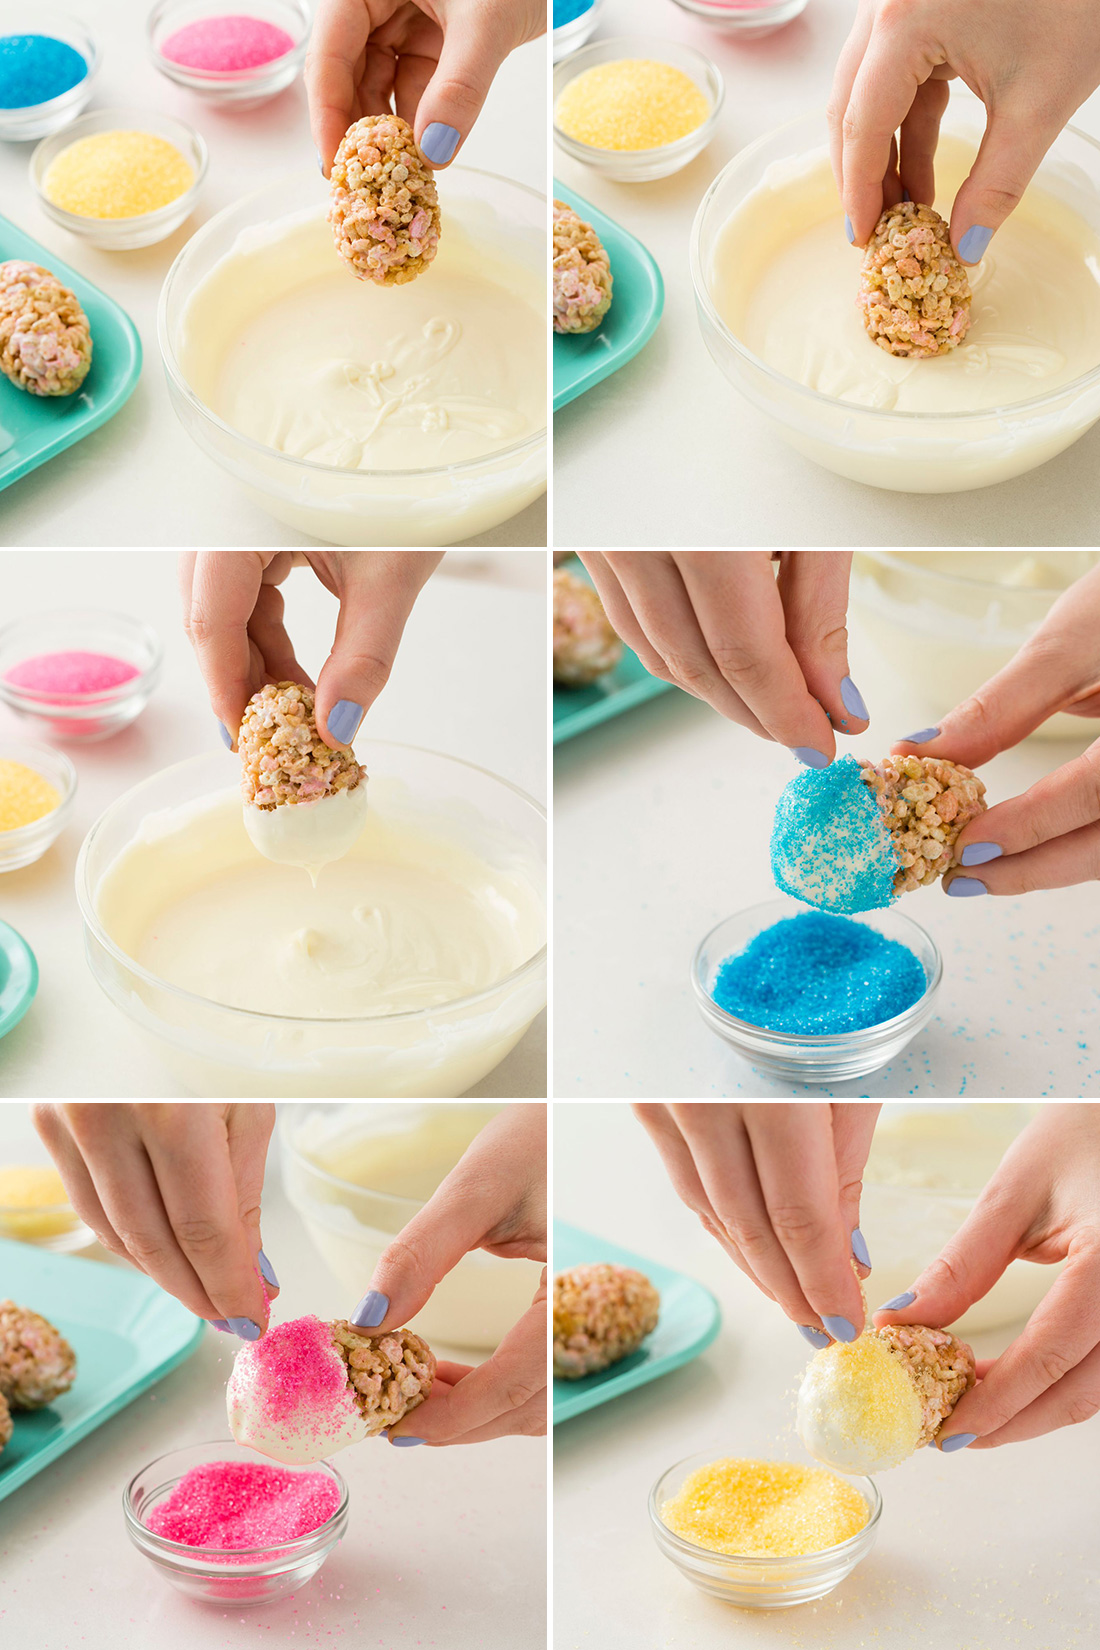 how to make minute rice into japanese rice